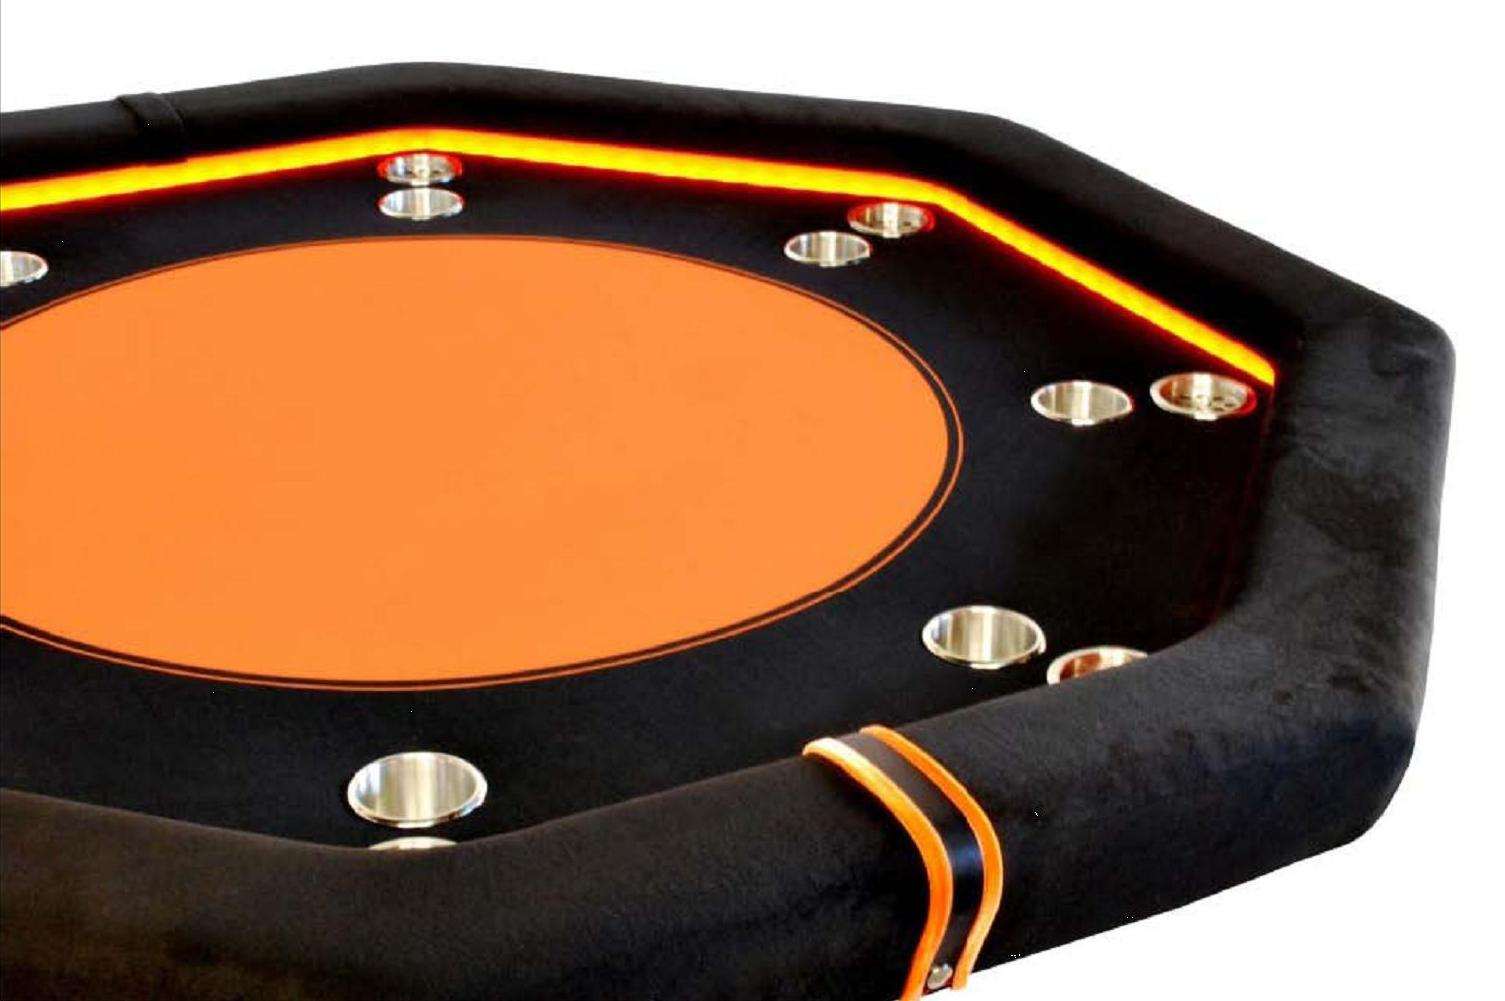 ... Octagonal Poker Table Orange CAIMAN OCIO METAL